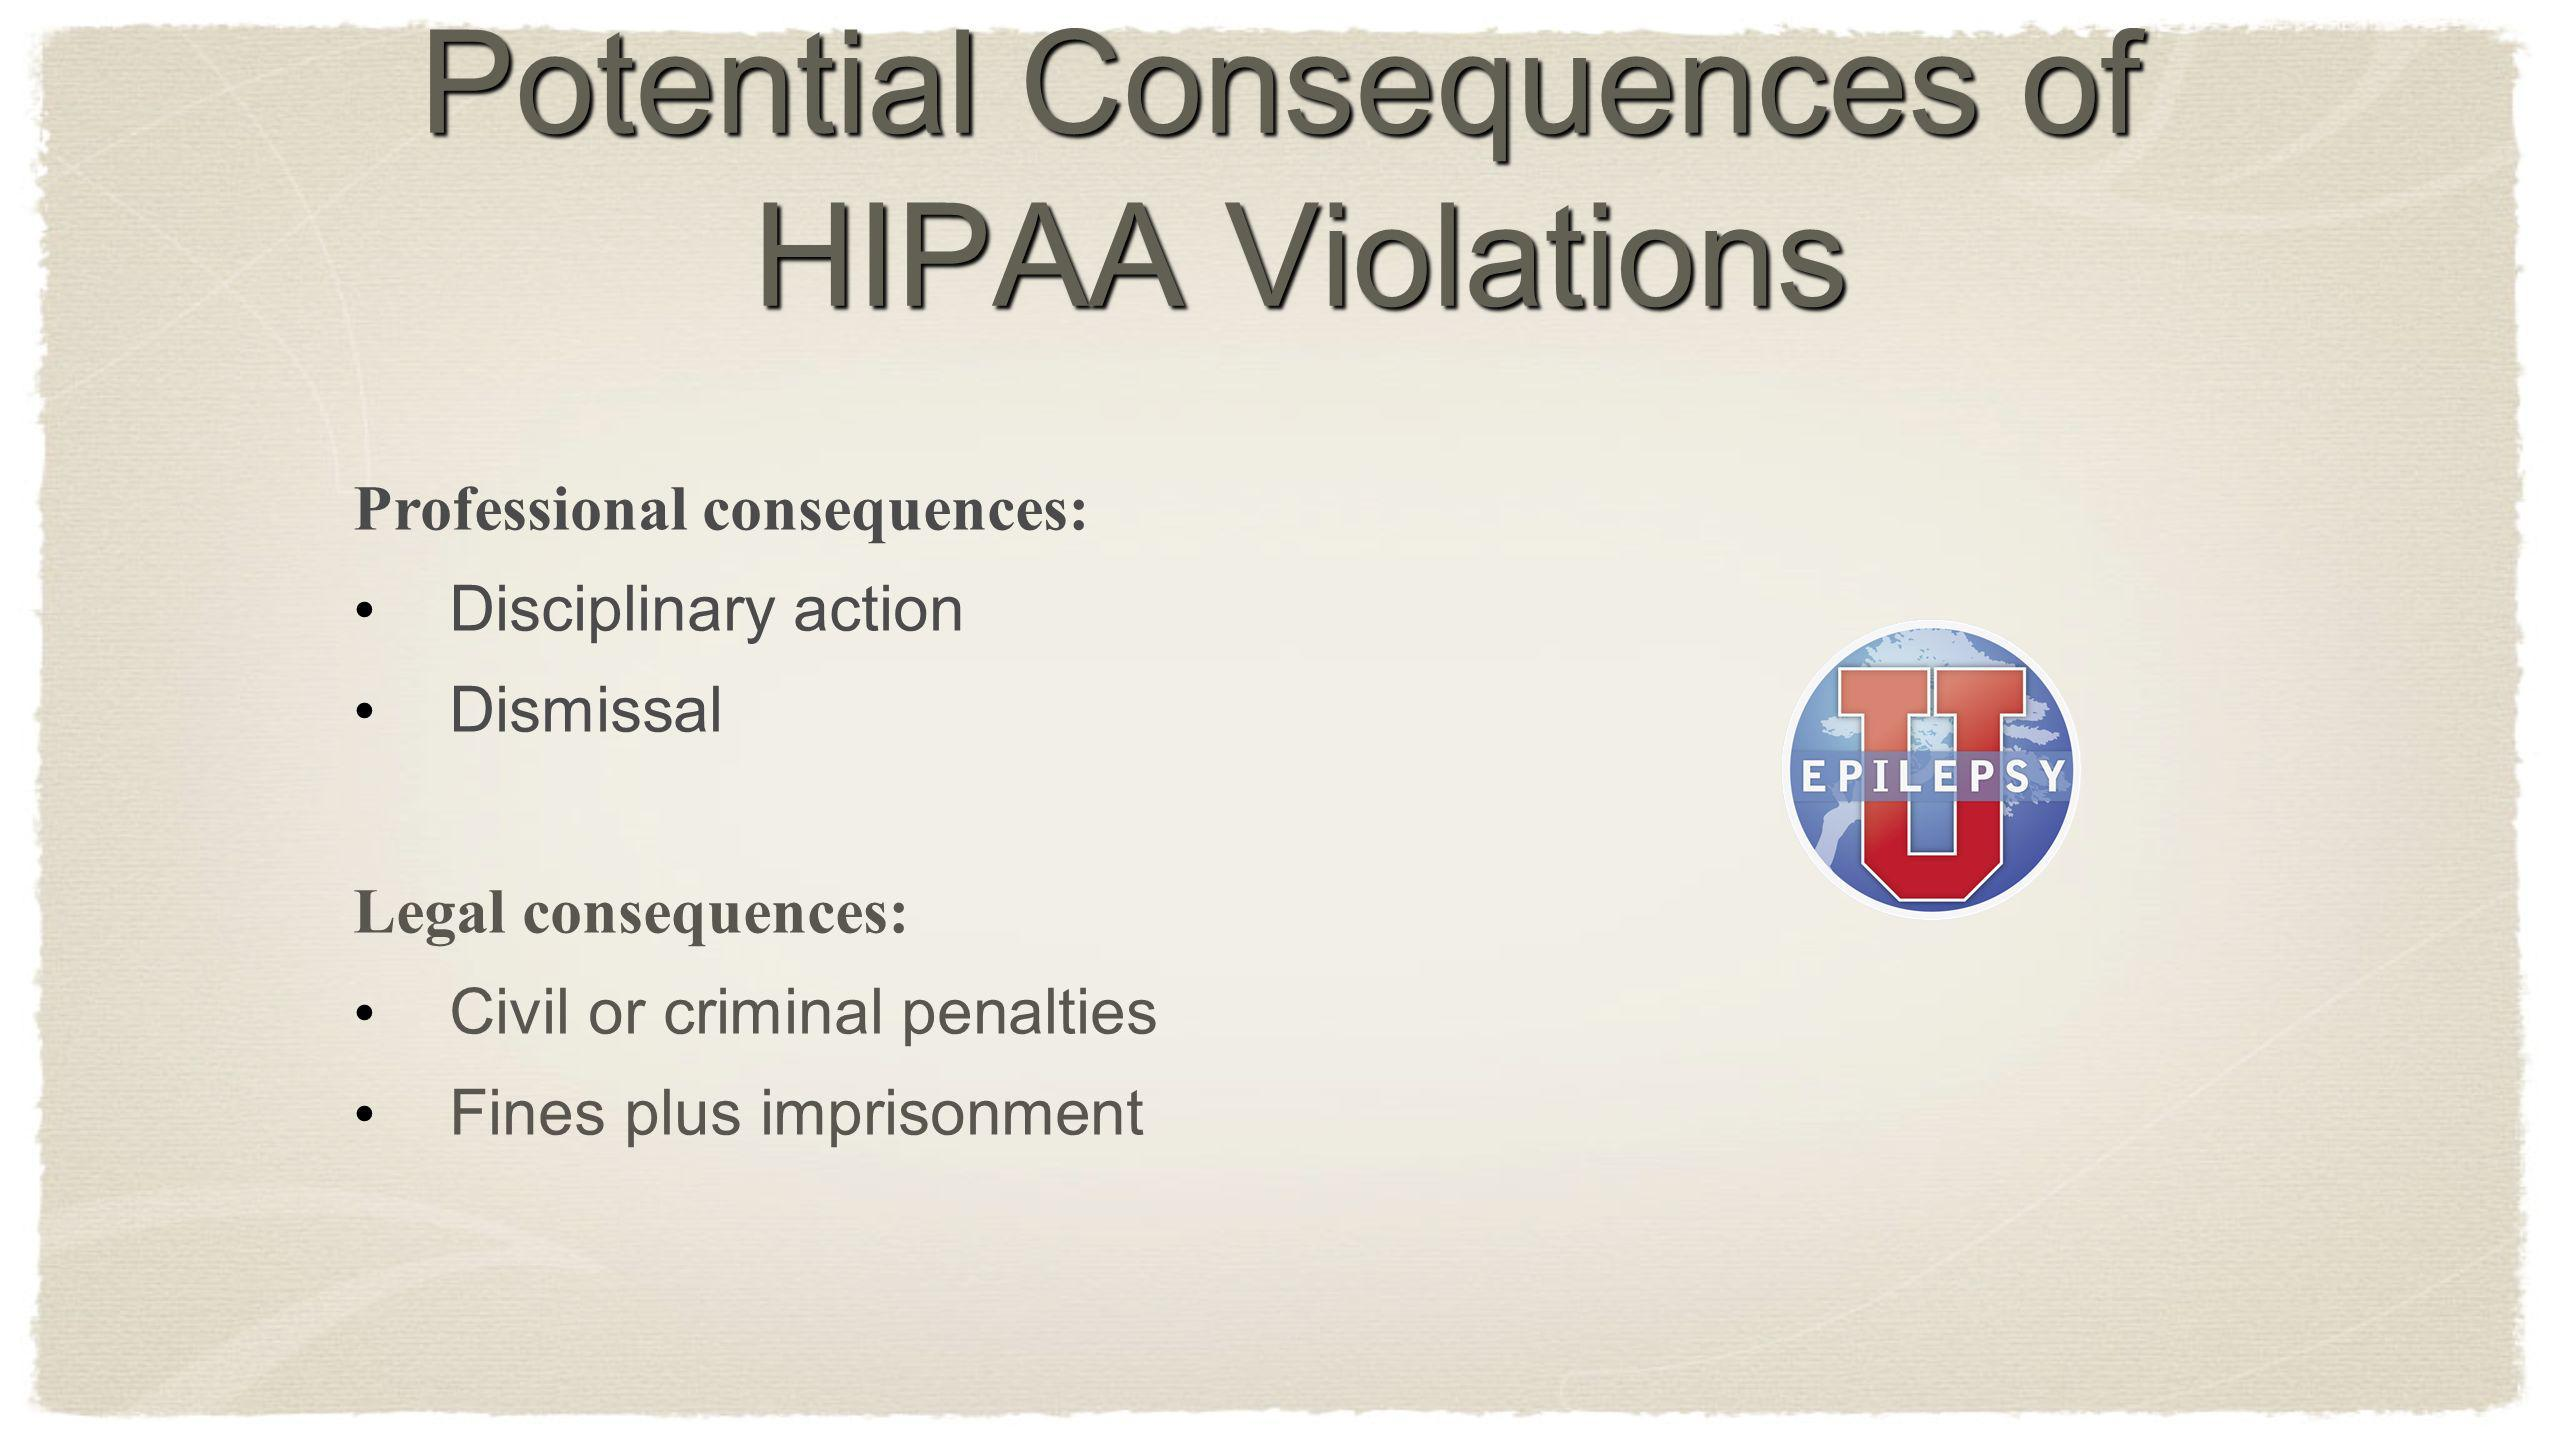 Potential Consequences of HIPAA Violations Professional consequences: Disciplinary action Dismissal Legal consequences: Civil or criminal penalties Fi